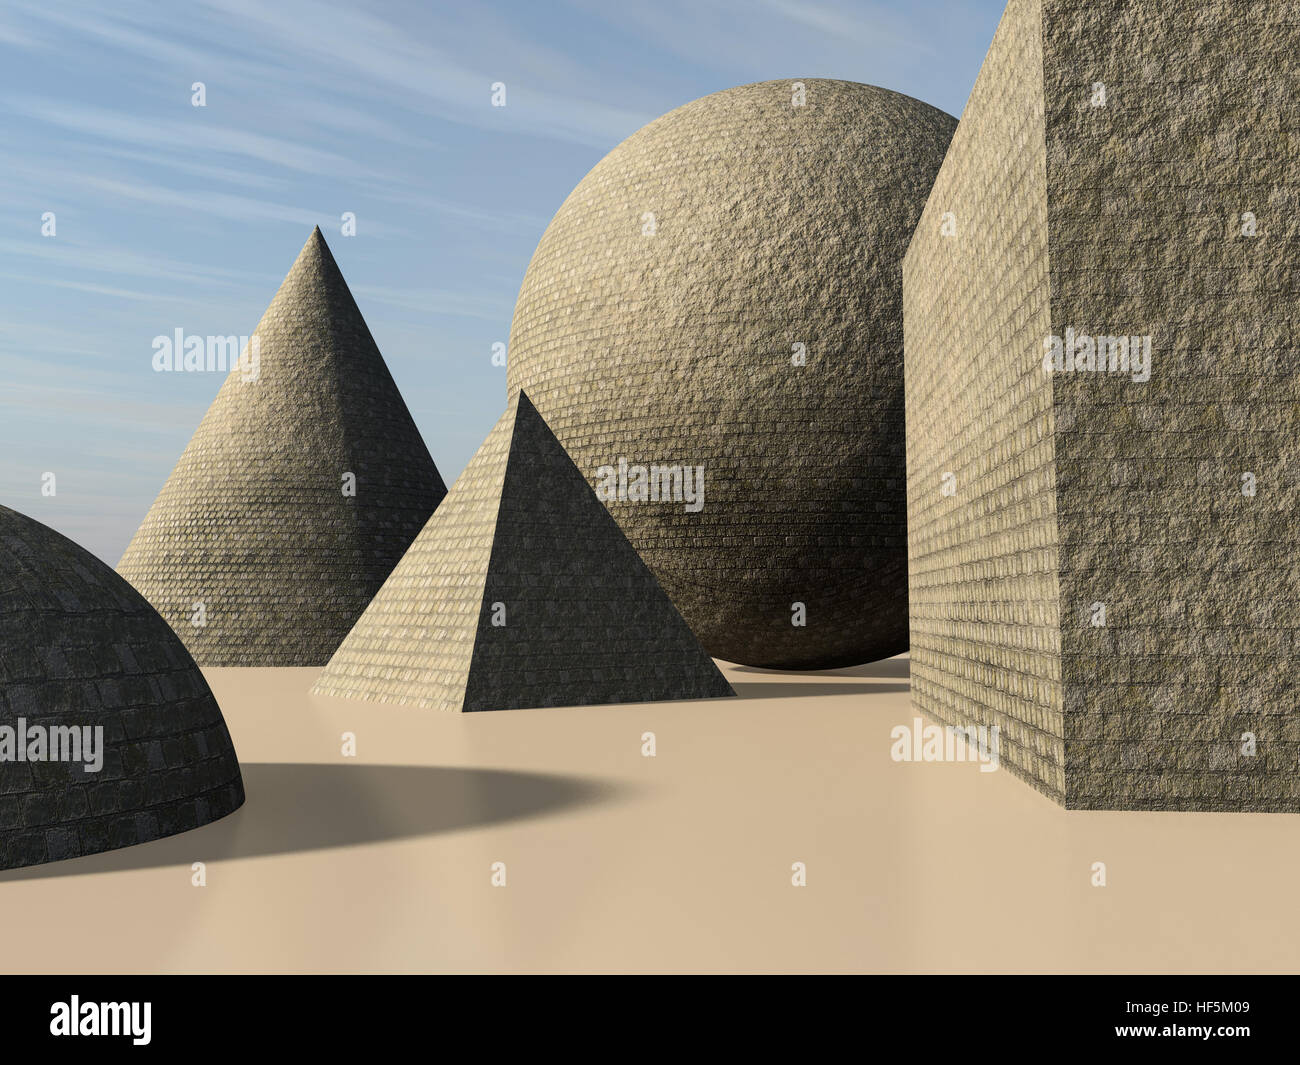 An abstract background with primitive cone, pyramid, sphere and cube shapes made of stone bricks, 3d illustration. - Stock Image